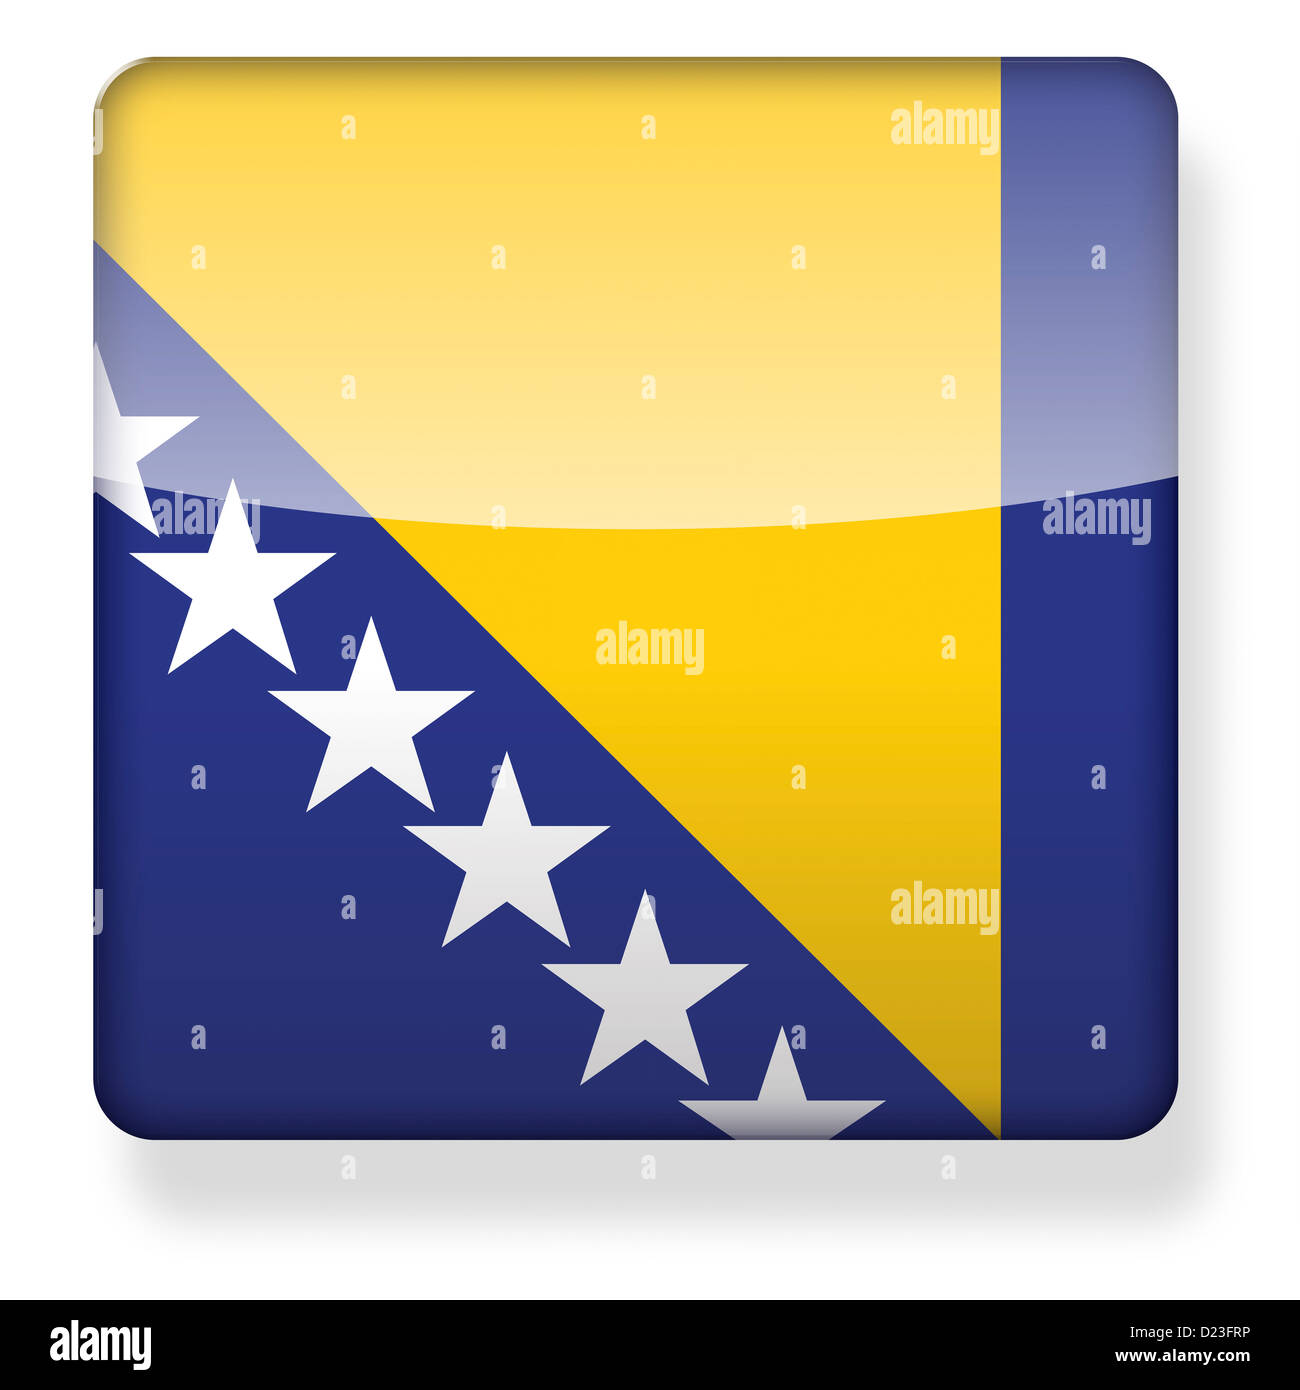 Bosnia Herzegovina flag as an app icon. Clipping path included. - Stock Image